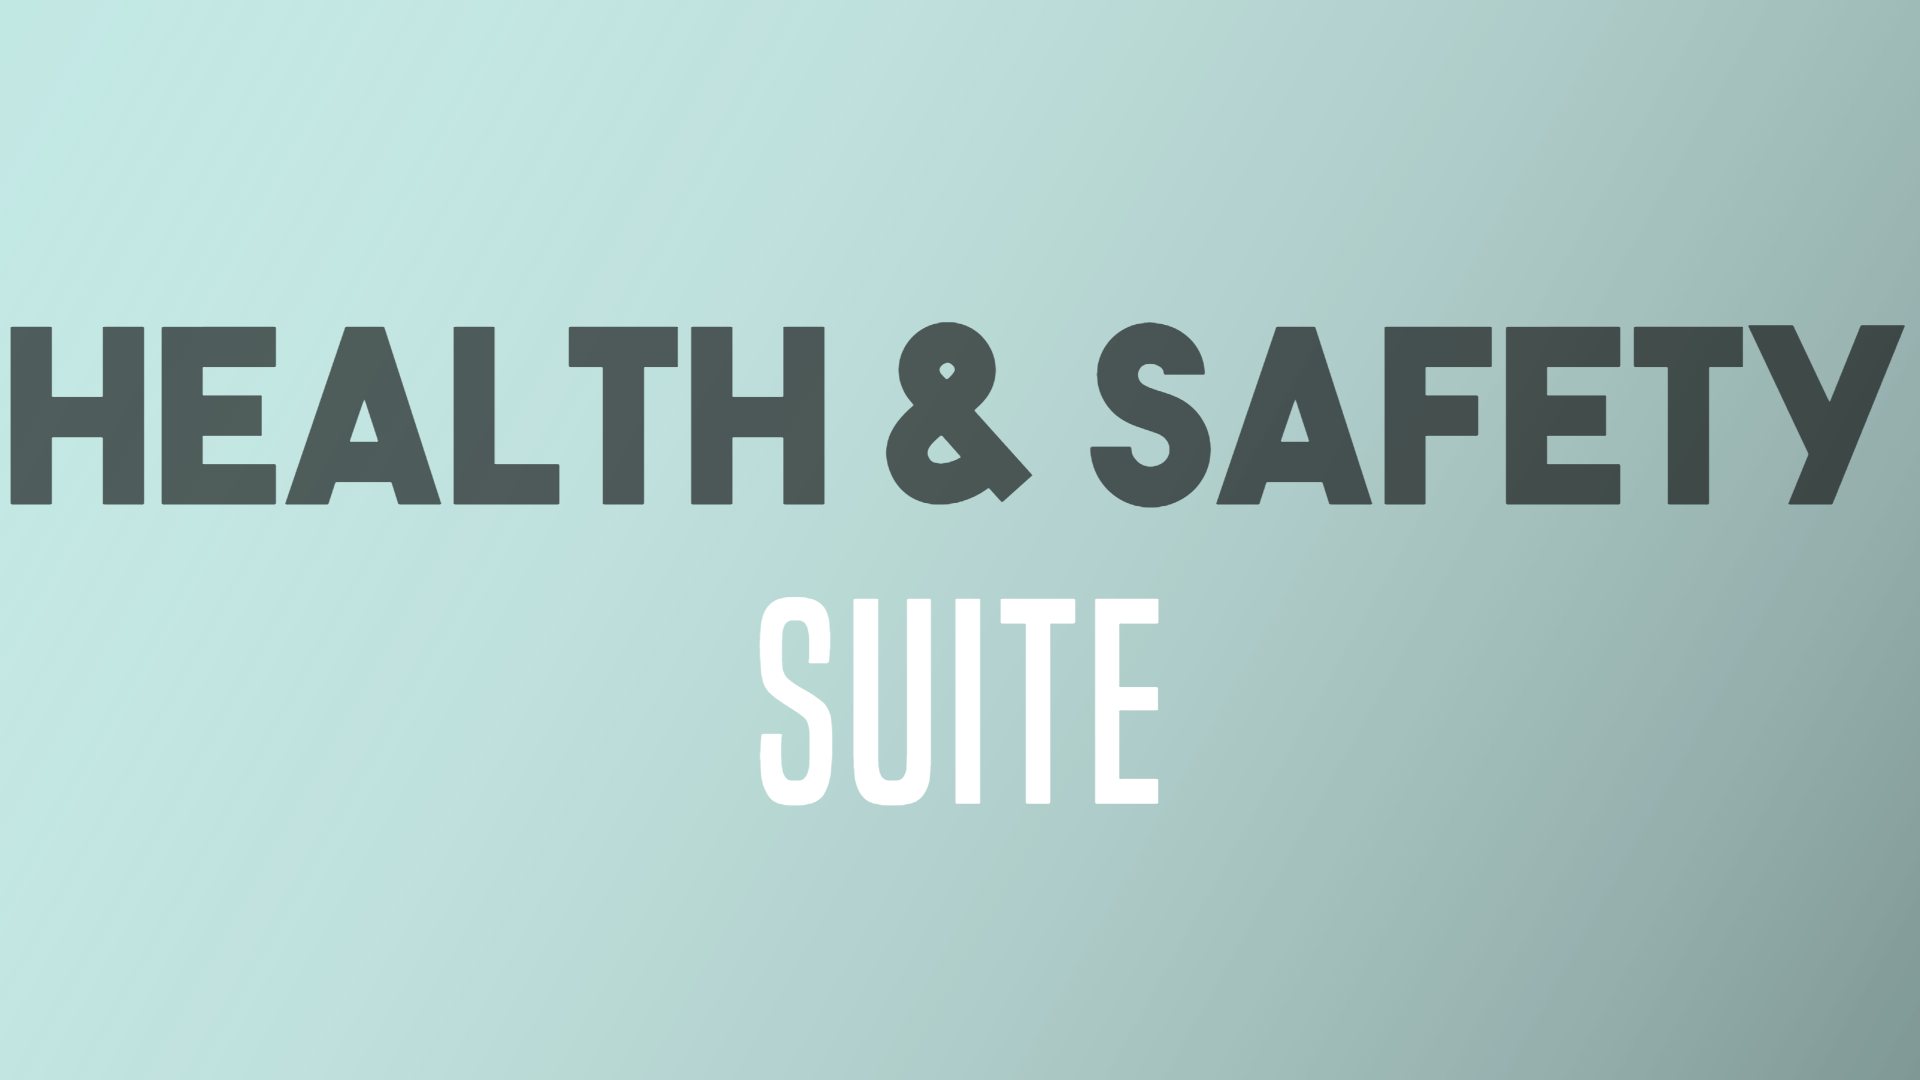 health & safety suite